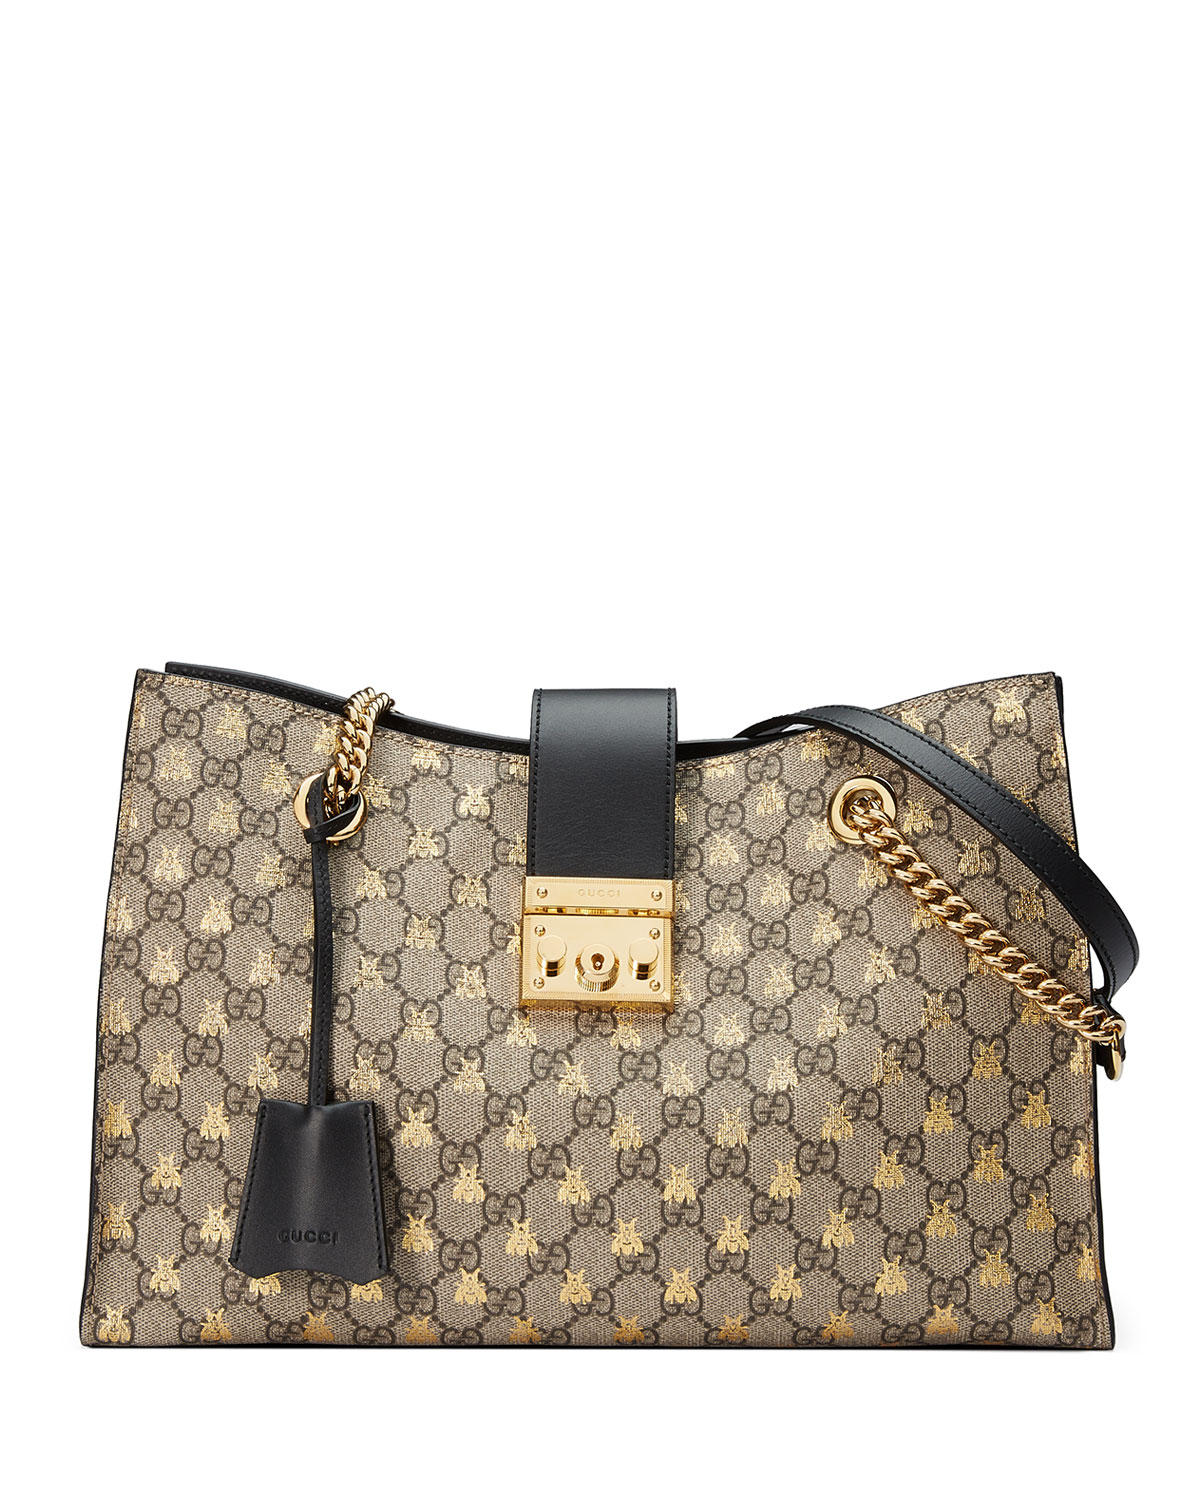 c10749441 Gucci Padlock GG Supreme Canvas Bees Medium Shoulder Tote Bag ...